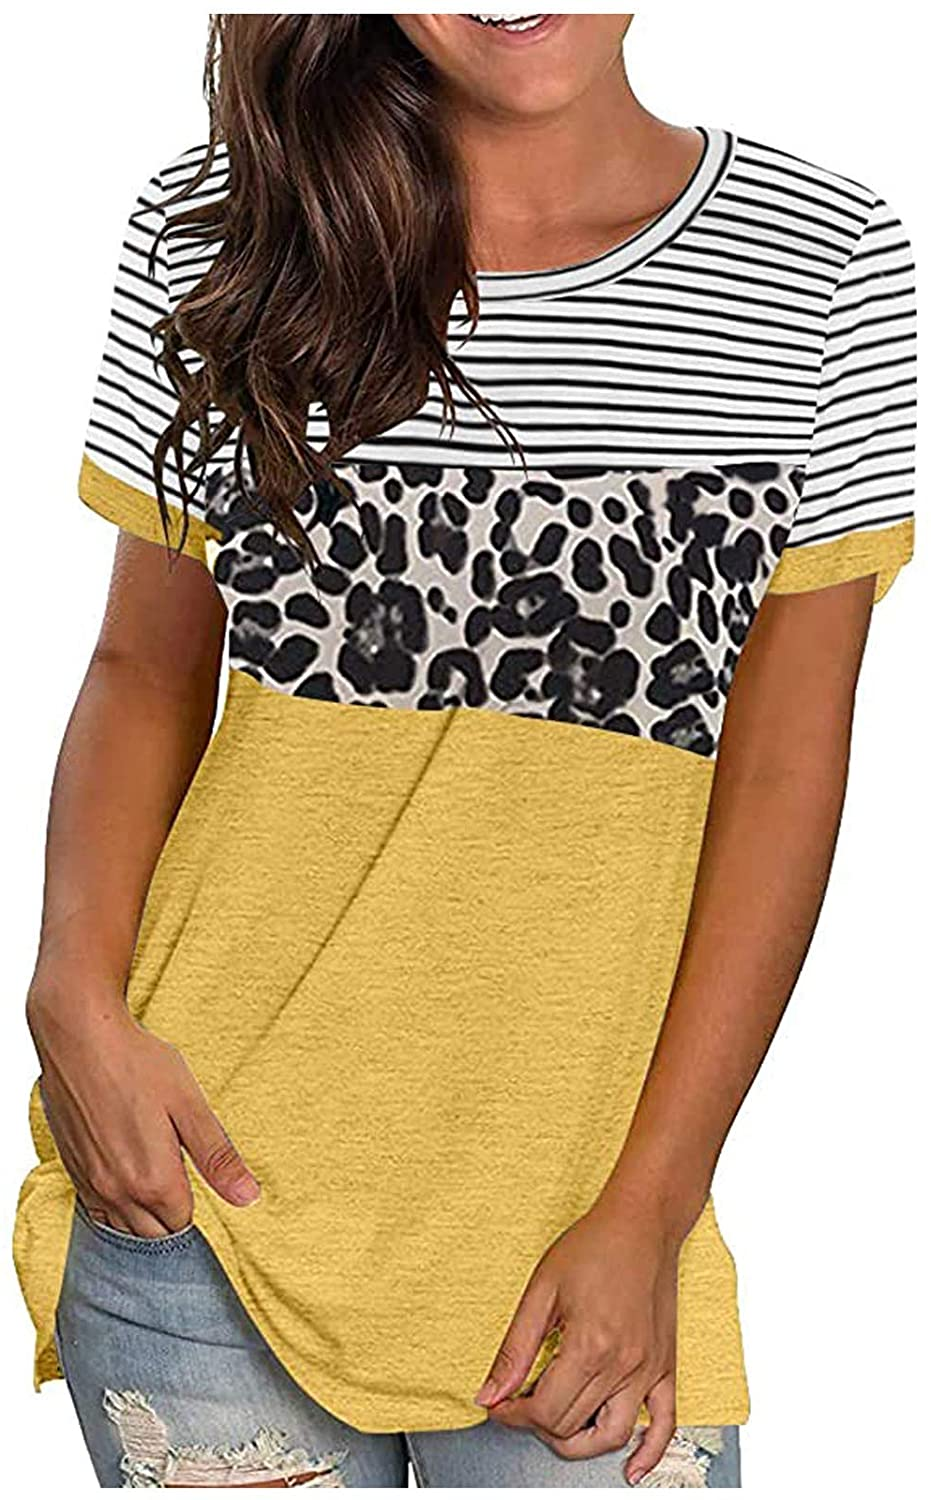 POTO Short Sleeve Tops for Womens,Women's Casual Summer Short Sleeve O-Neck T-Shirt Splicing Tee Top Loose Fit Blouses